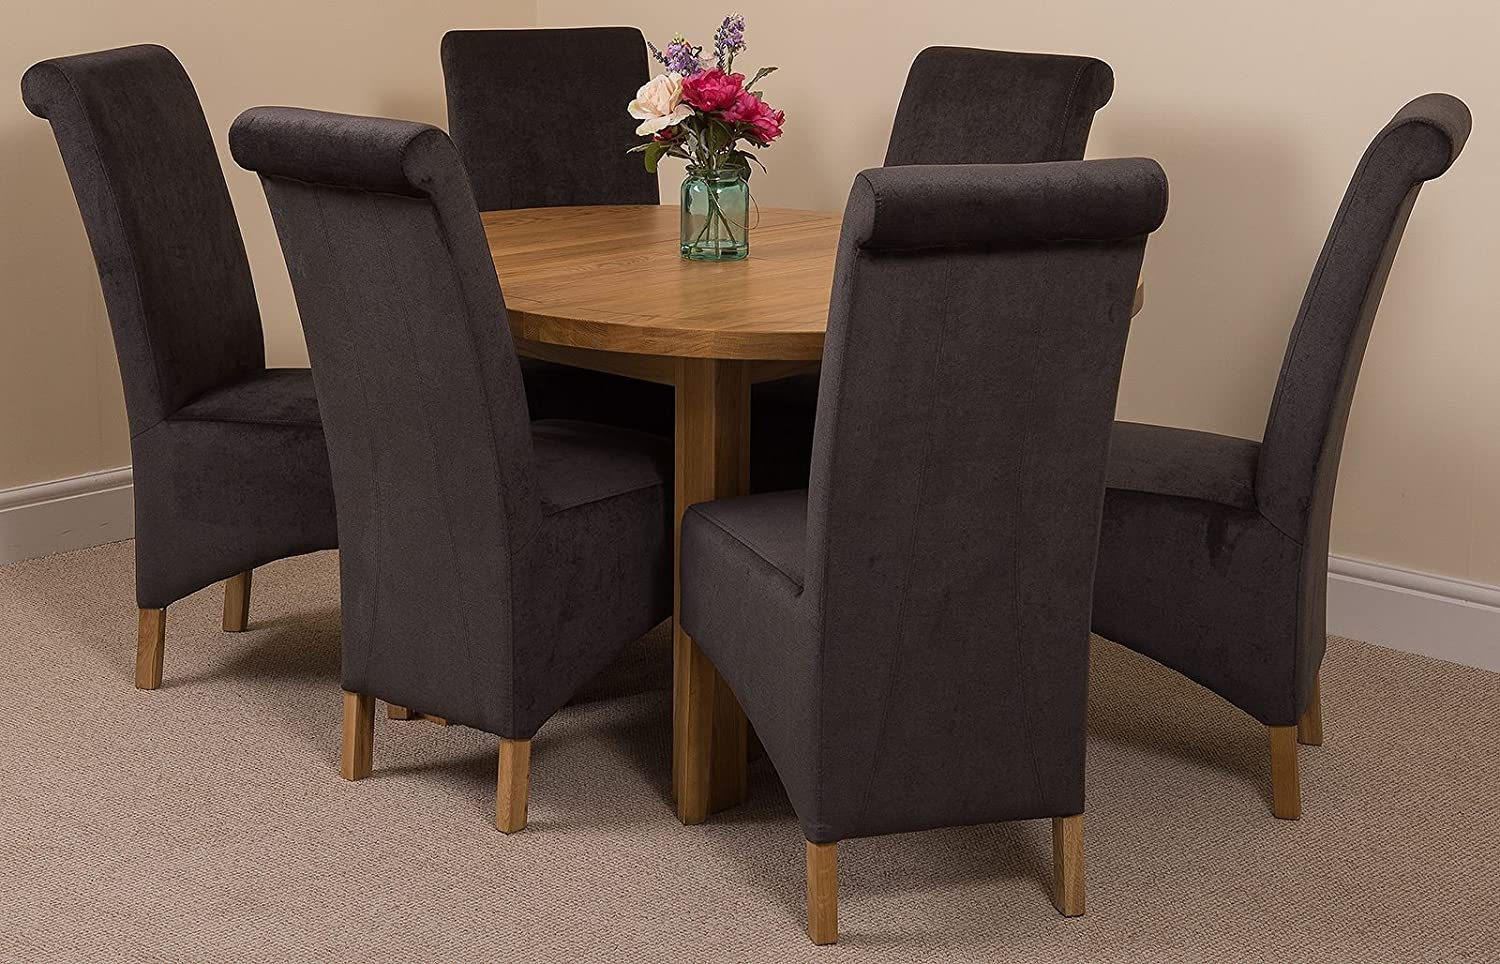 Modern furniture direct edmonton extending oval solid oak dining set table 6 black fabric chairs amazon co uk kitchen home